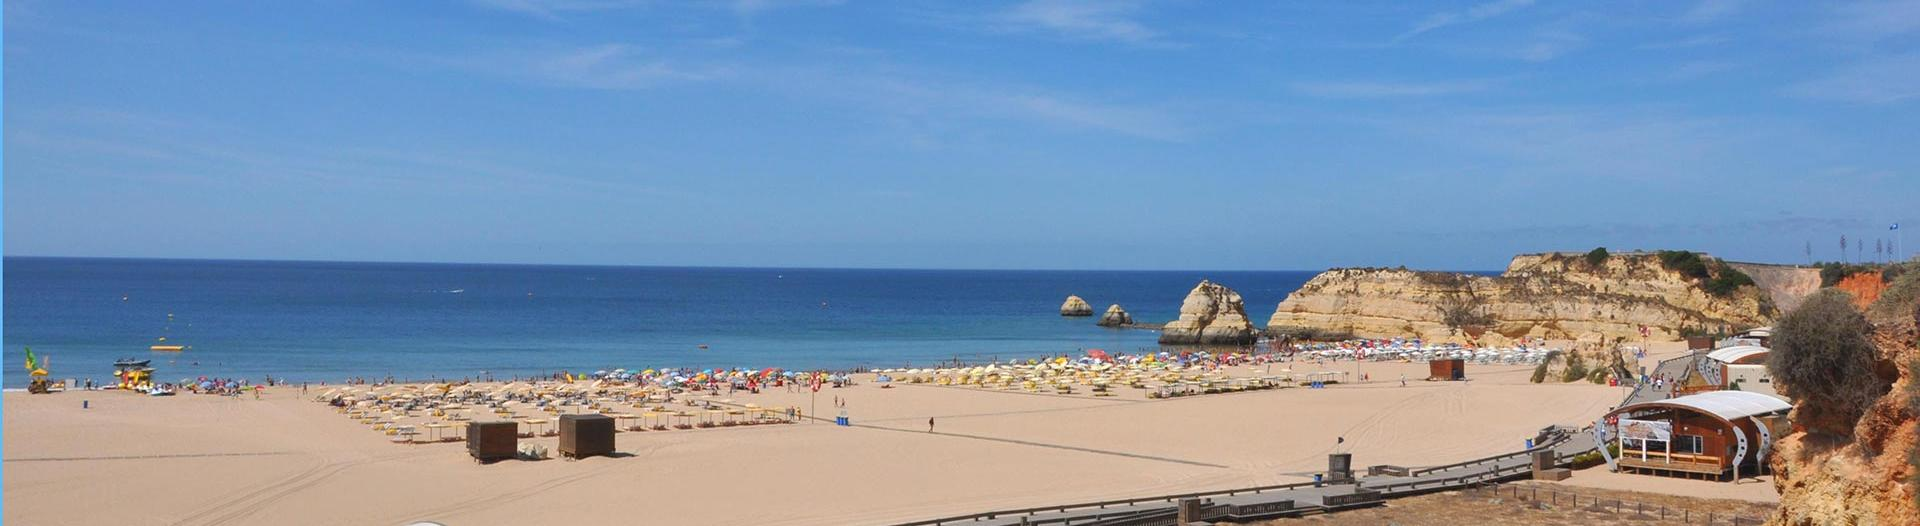 slider-region-algarve-plage